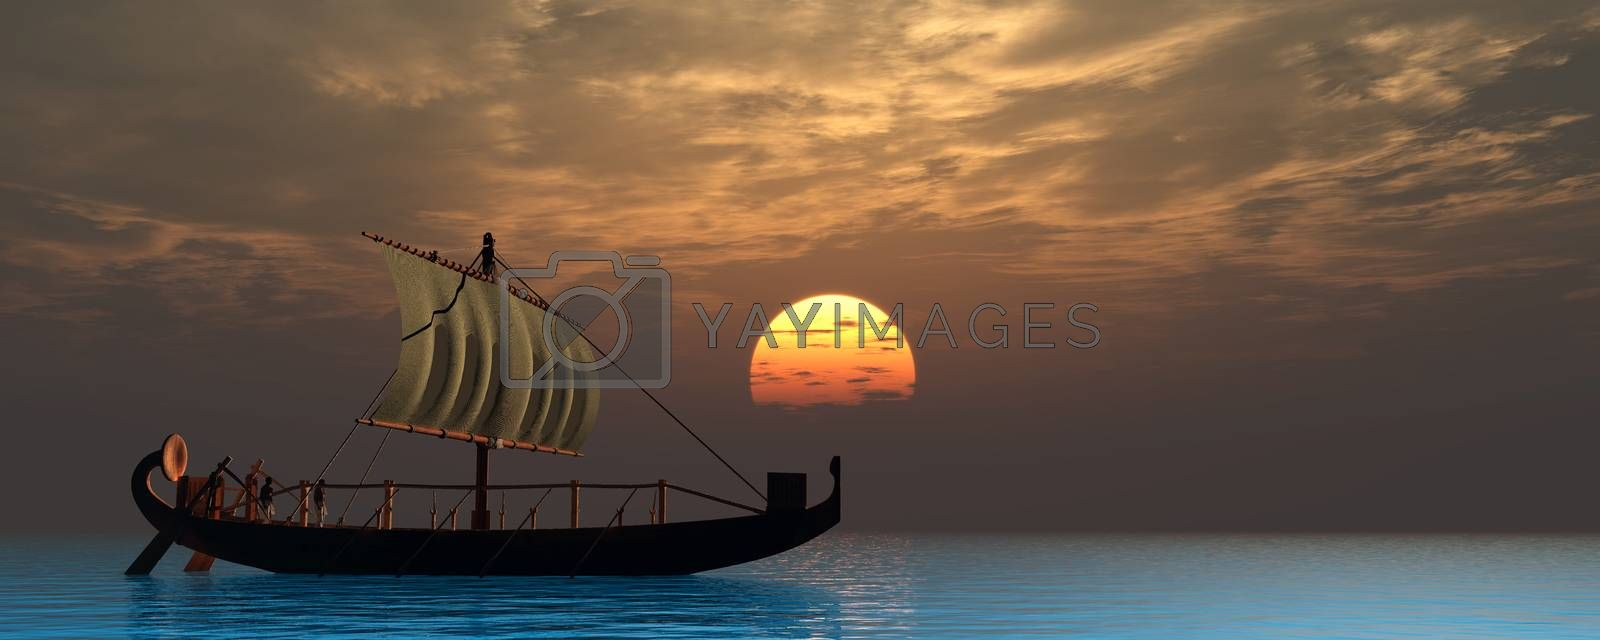 Two boatmen sail on a quiet ocean in an ancient historical Egyptian sailing ship as the sun sets at the horizon.